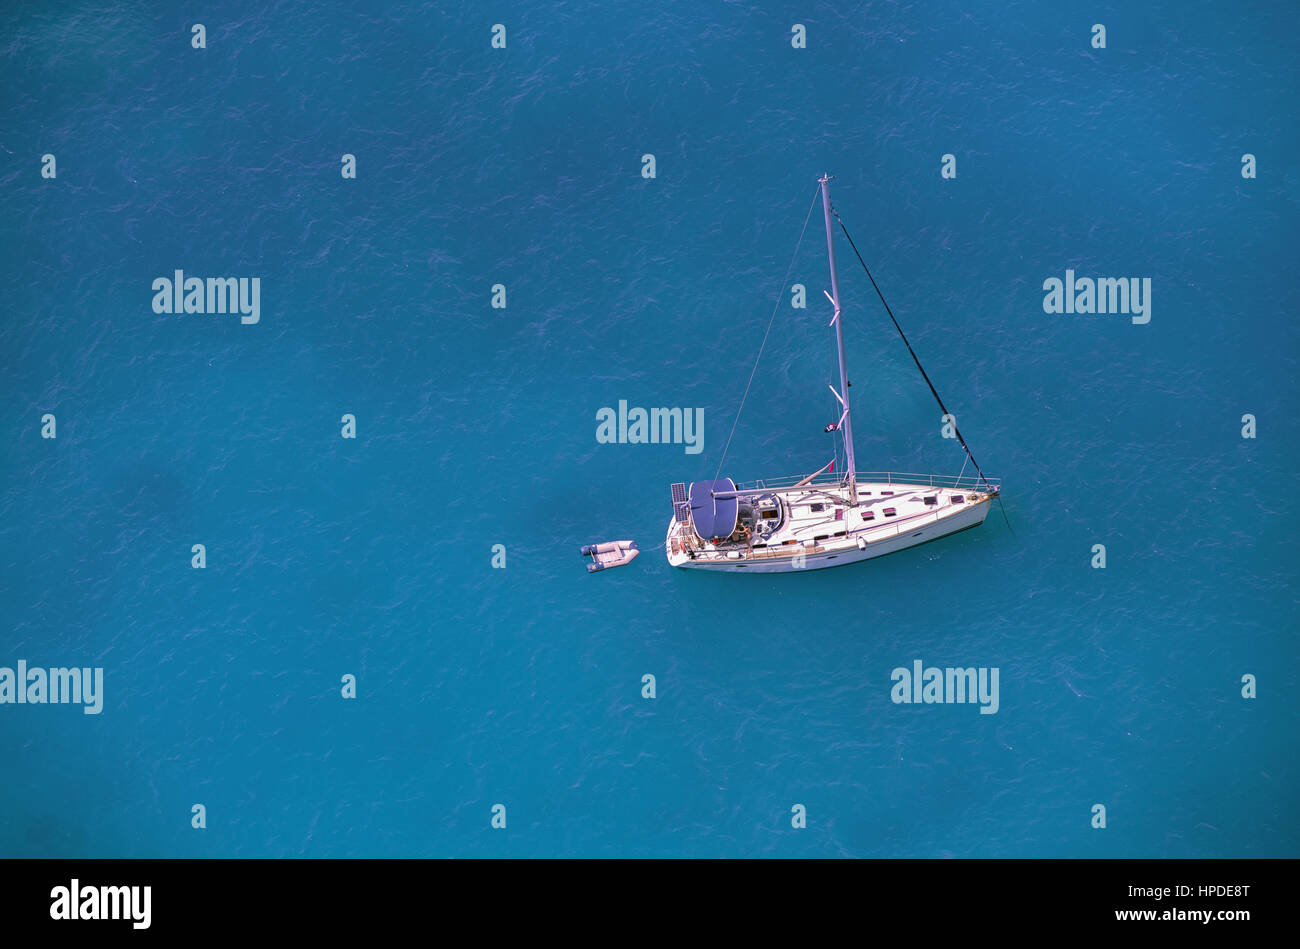 Sailing at the western coastline of Lefkada island, in the Ionian Sea, Greece Stock Photo